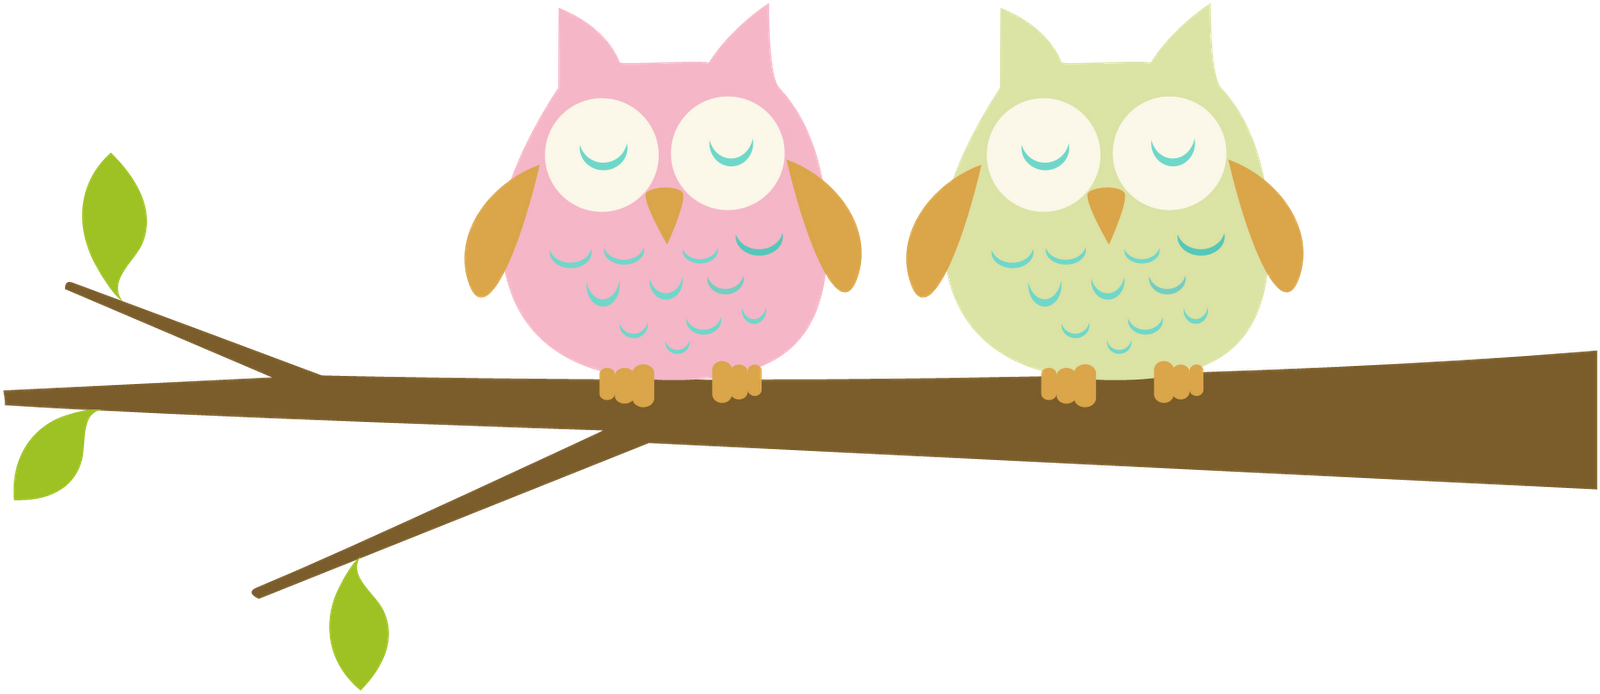 Baby Owl Clipart Black And White-baby owl clipart black and white-0